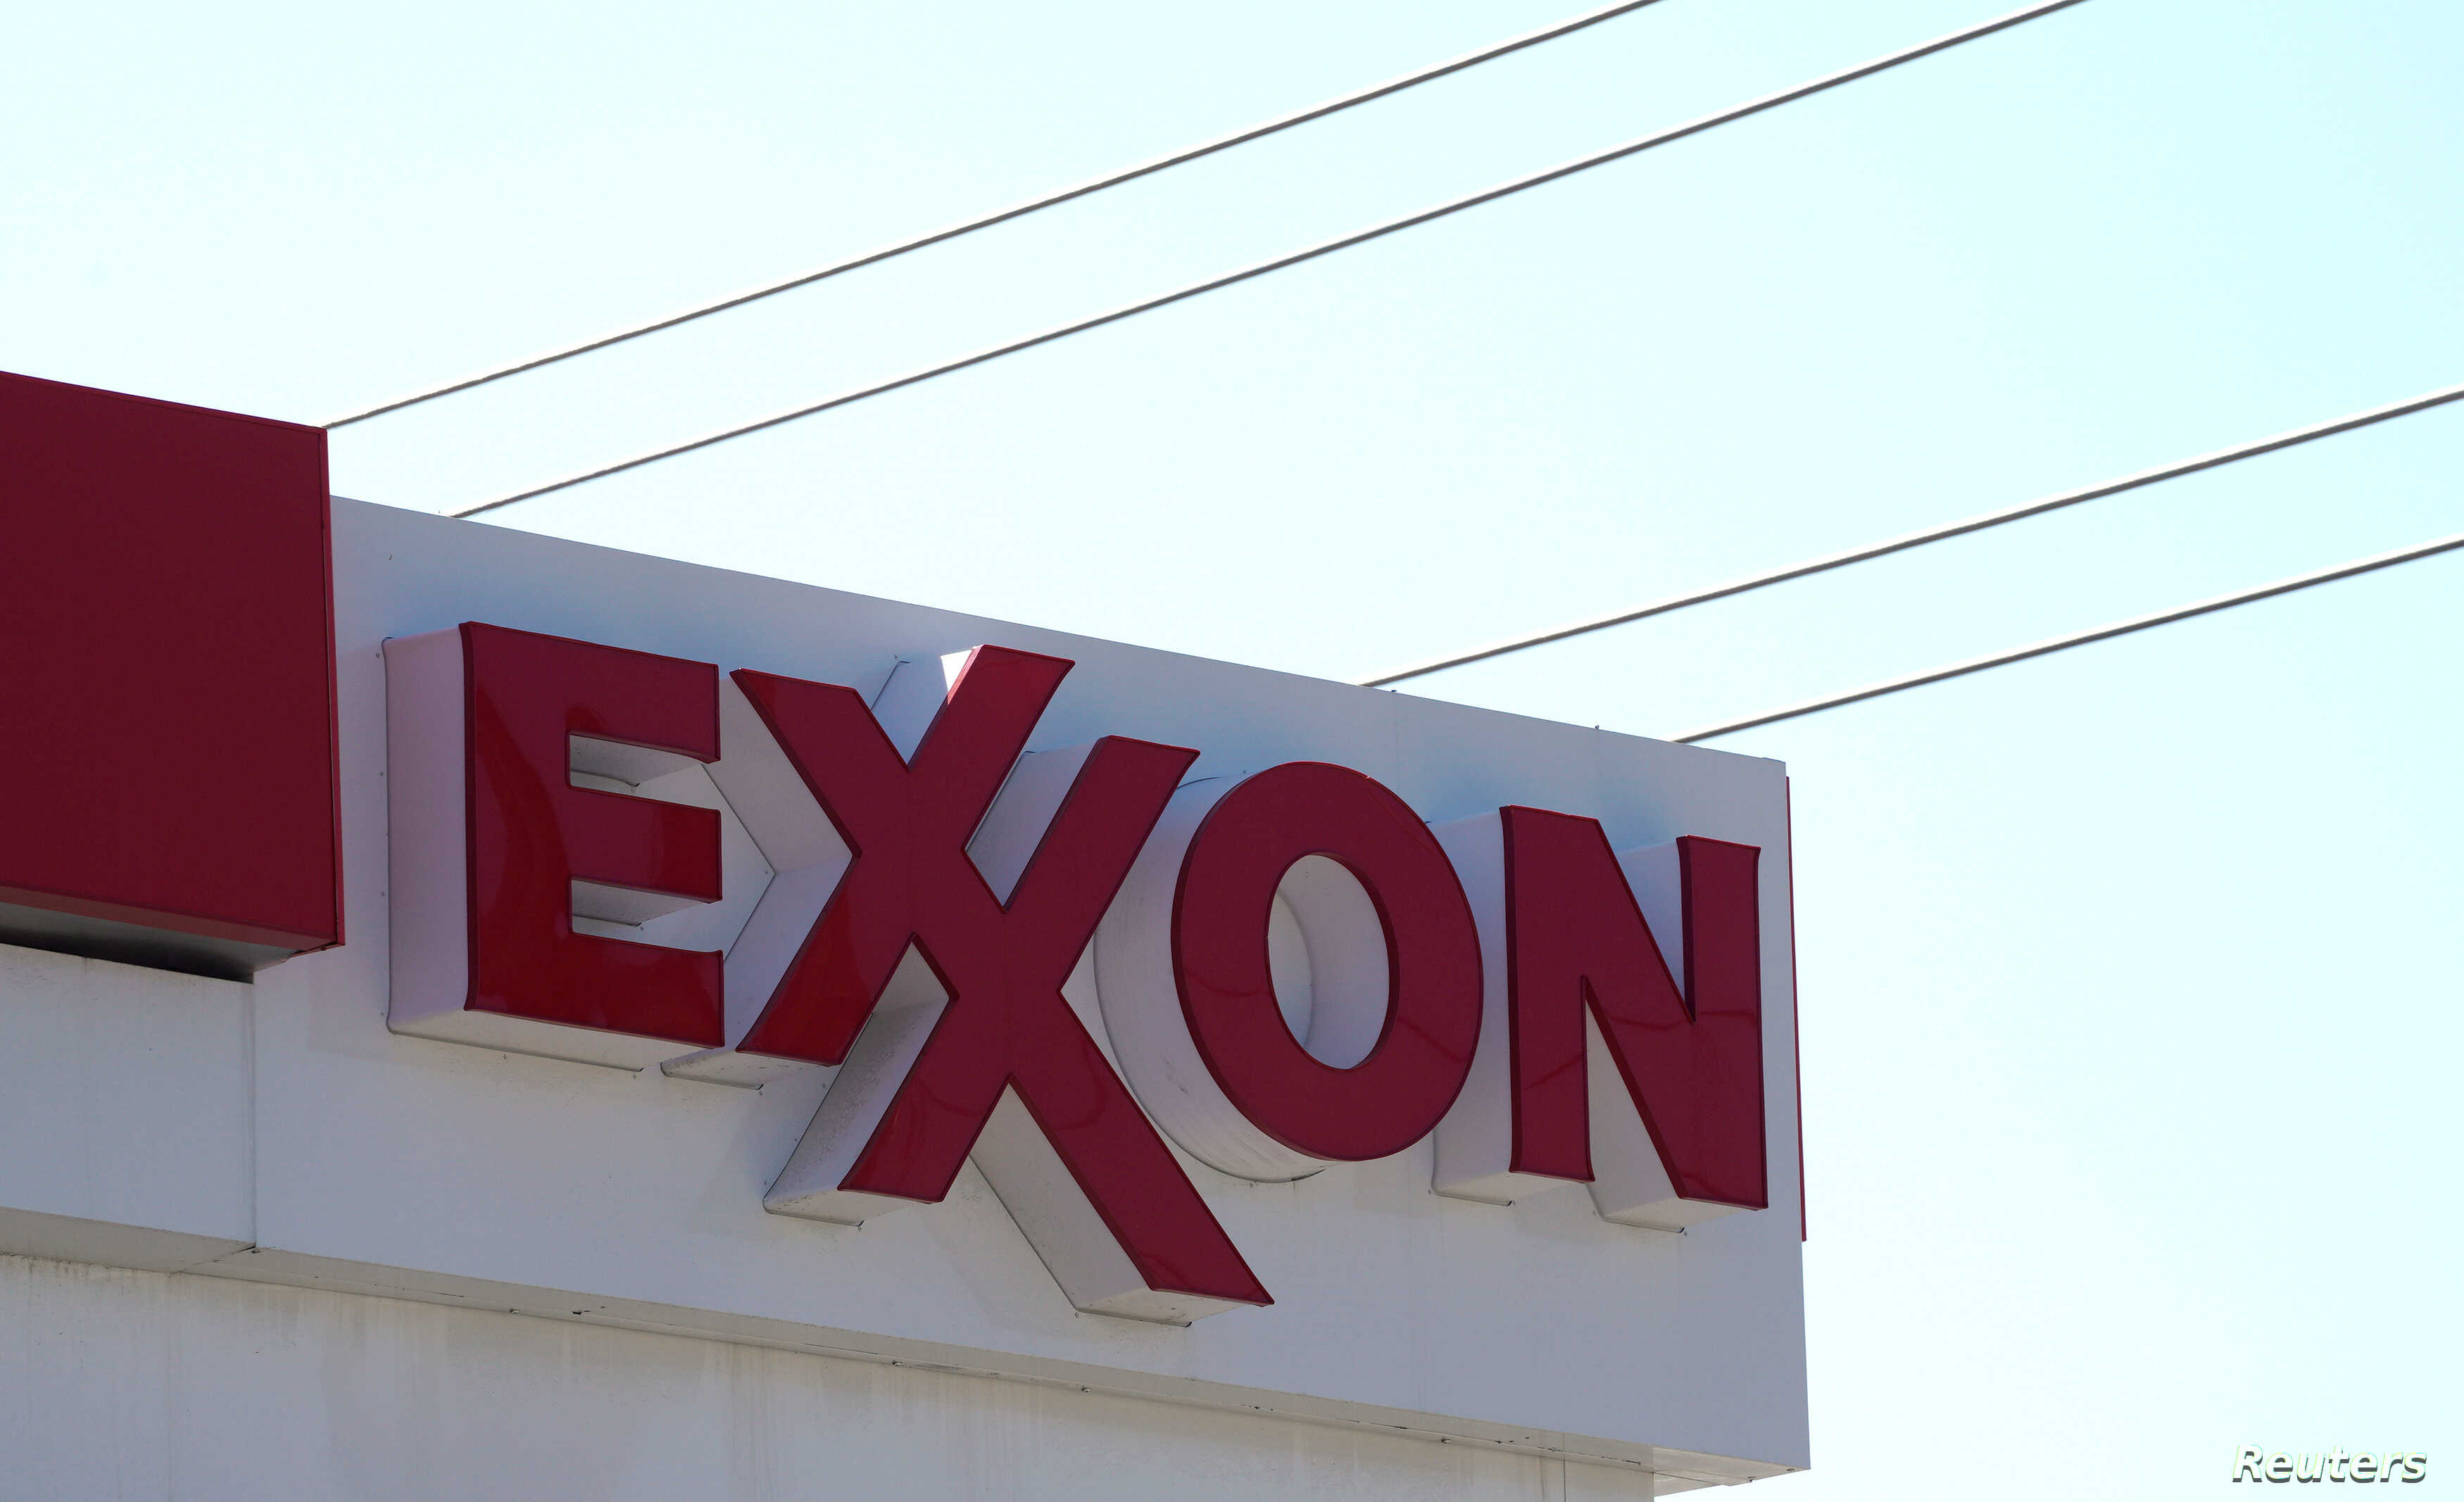 FILE - The Exxon Mobil logo is seen at a gas station in Denver, Colorado, United States.